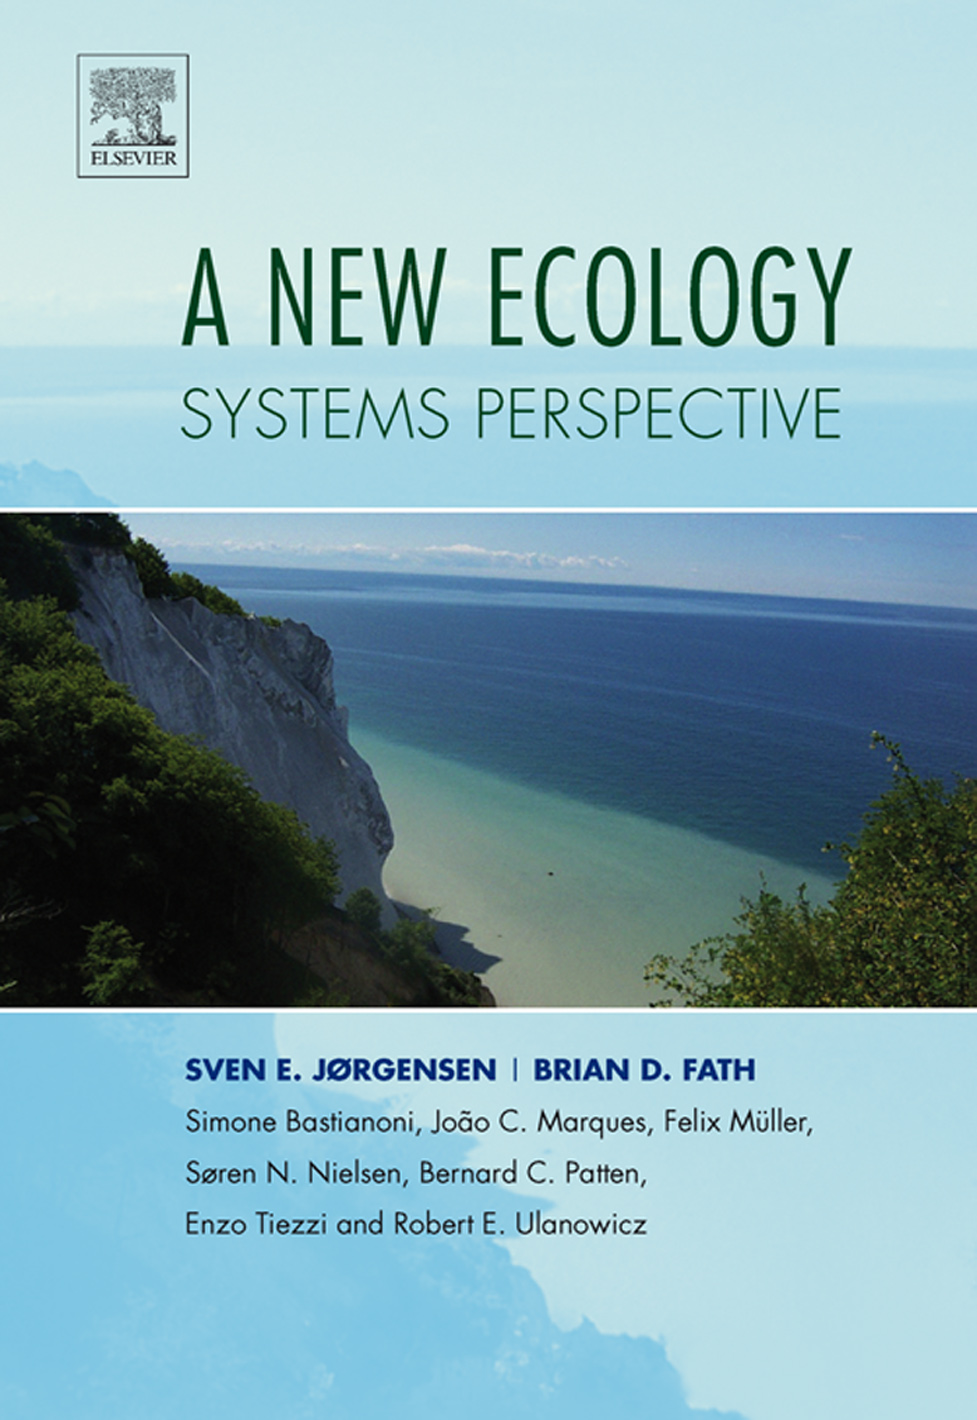 A NEW ECOLOGY SYSTEMS PERSPECTIVE